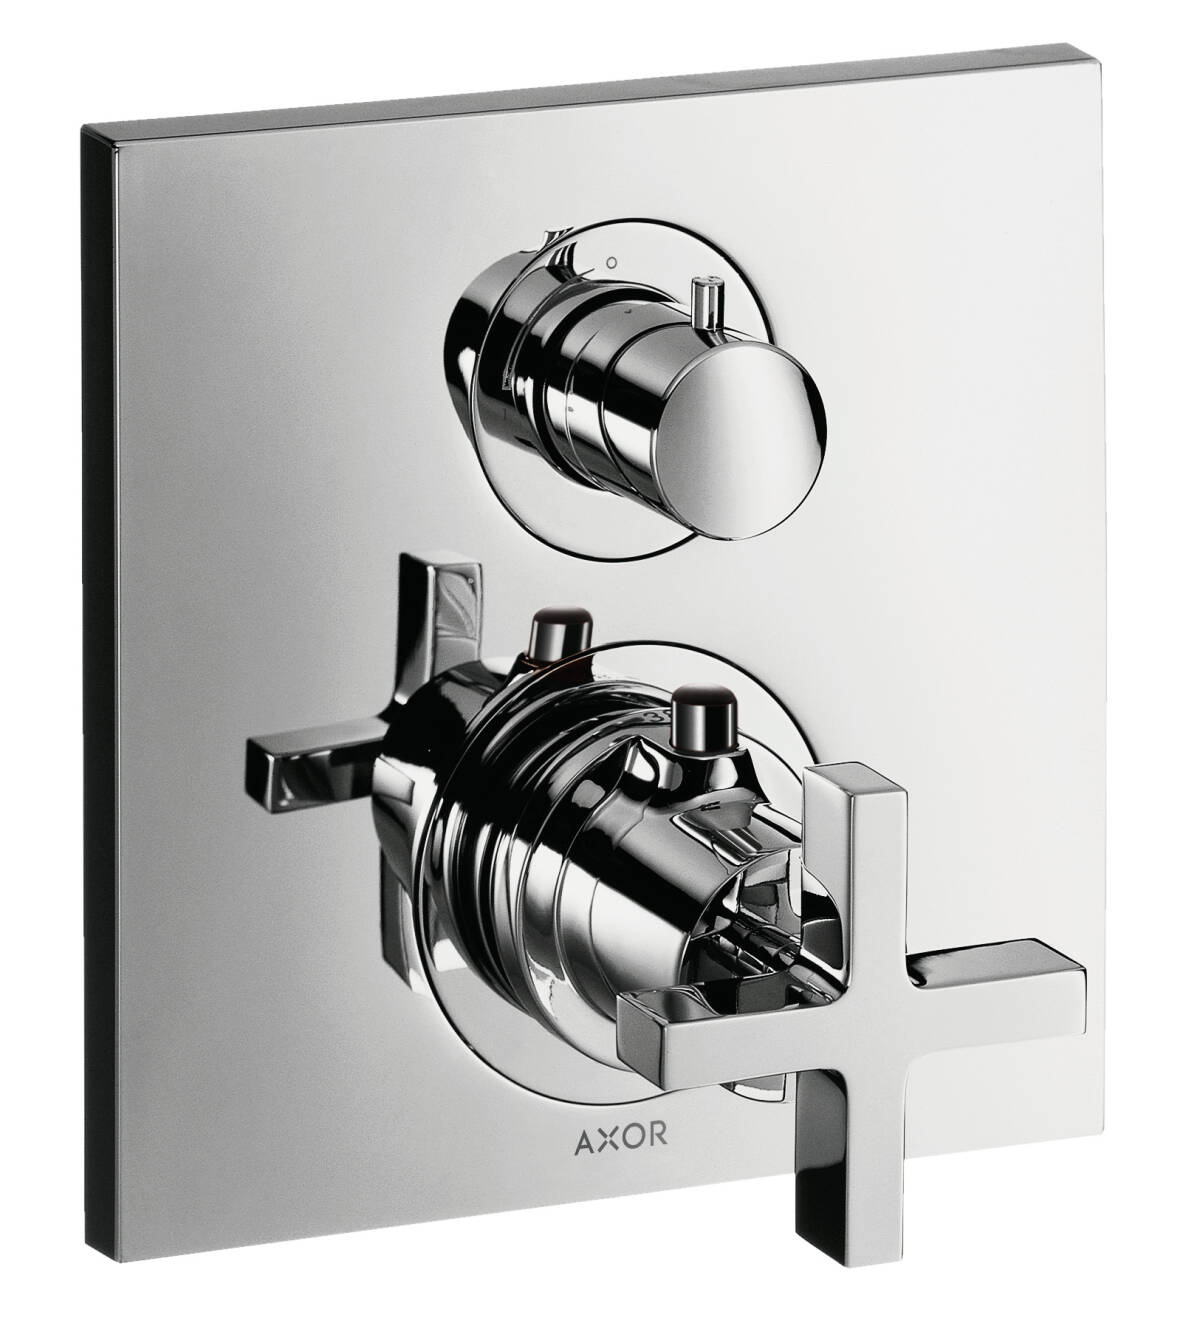 Thermostat for concealed installation with shut-off valve and cross handle, Brushed Black Chrome, 39705340